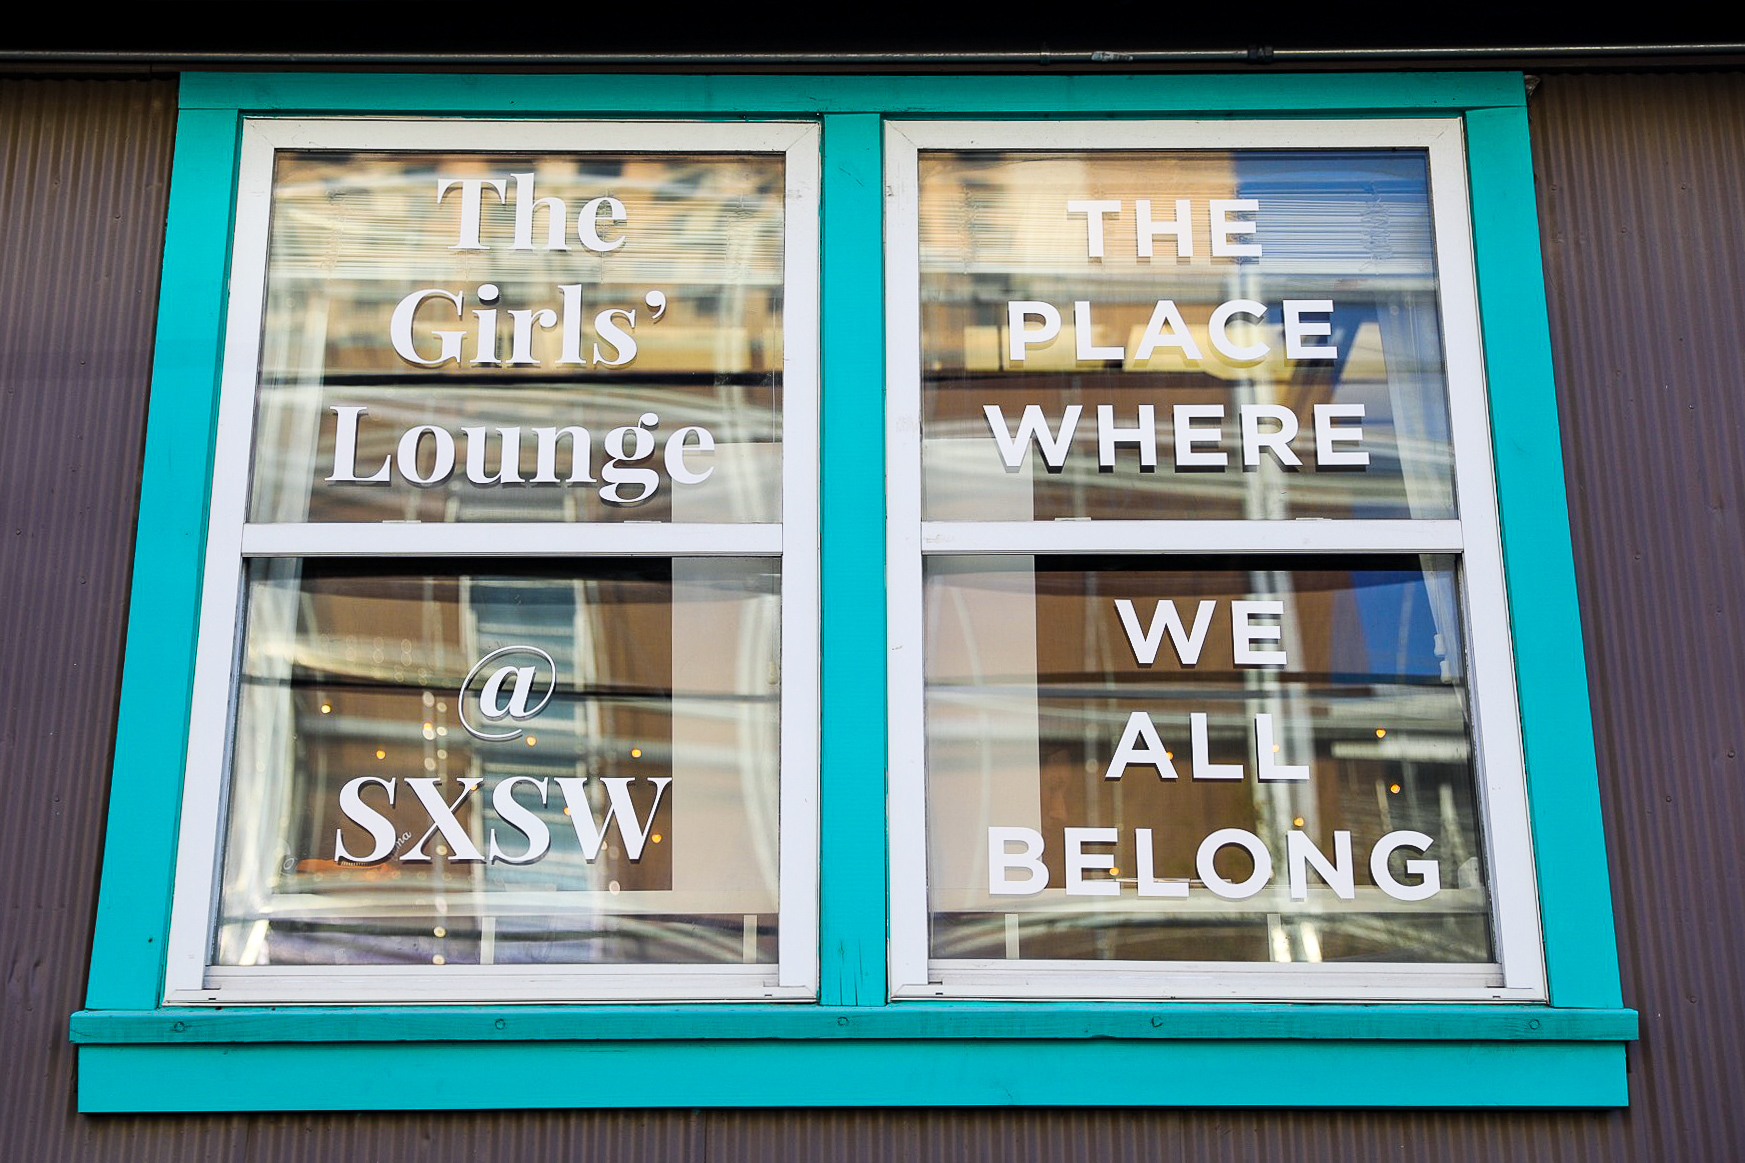 Window signage done for The Girls Lounge @ SXSW